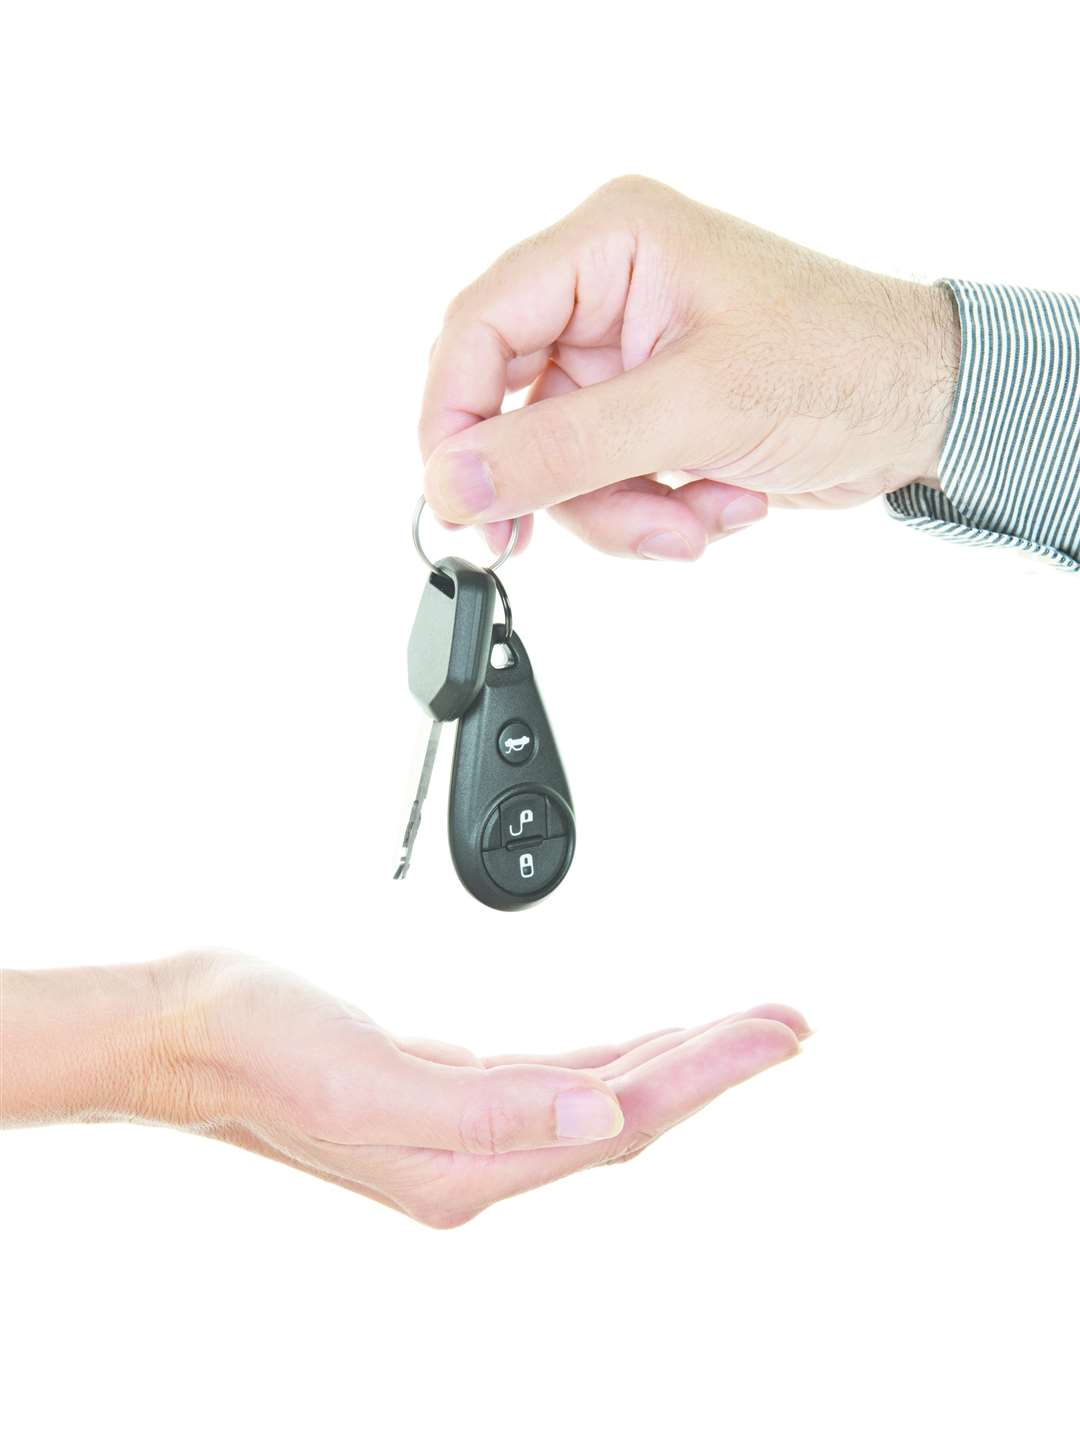 Police are warning drivers not to leave their car keys on show. Picture: iStock